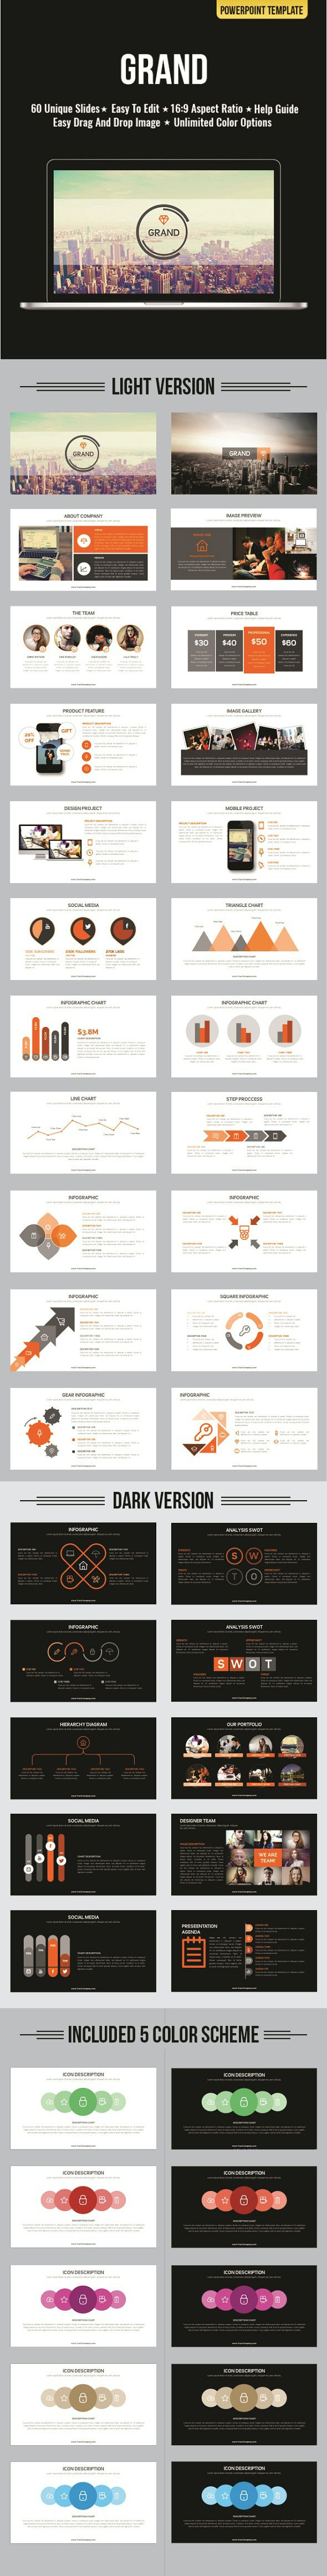 Grand PowerPoint - Abstract PowerPoint Templates